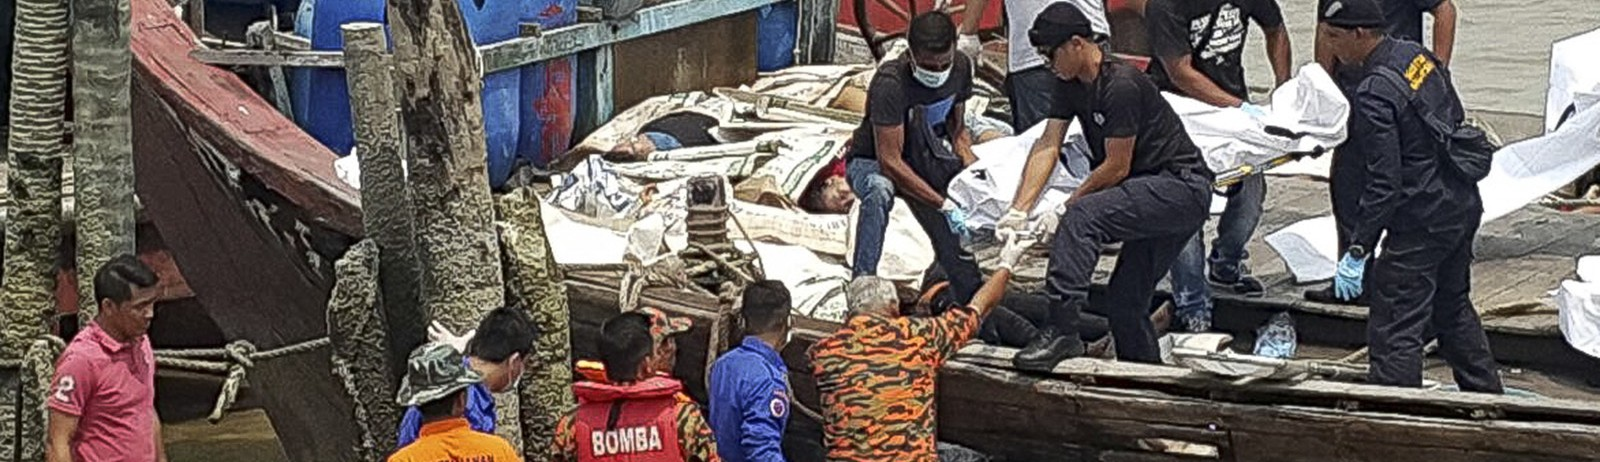 An Overloaded Boat Carrying at Least 70 Migrants Has Capsized Off Malaysia